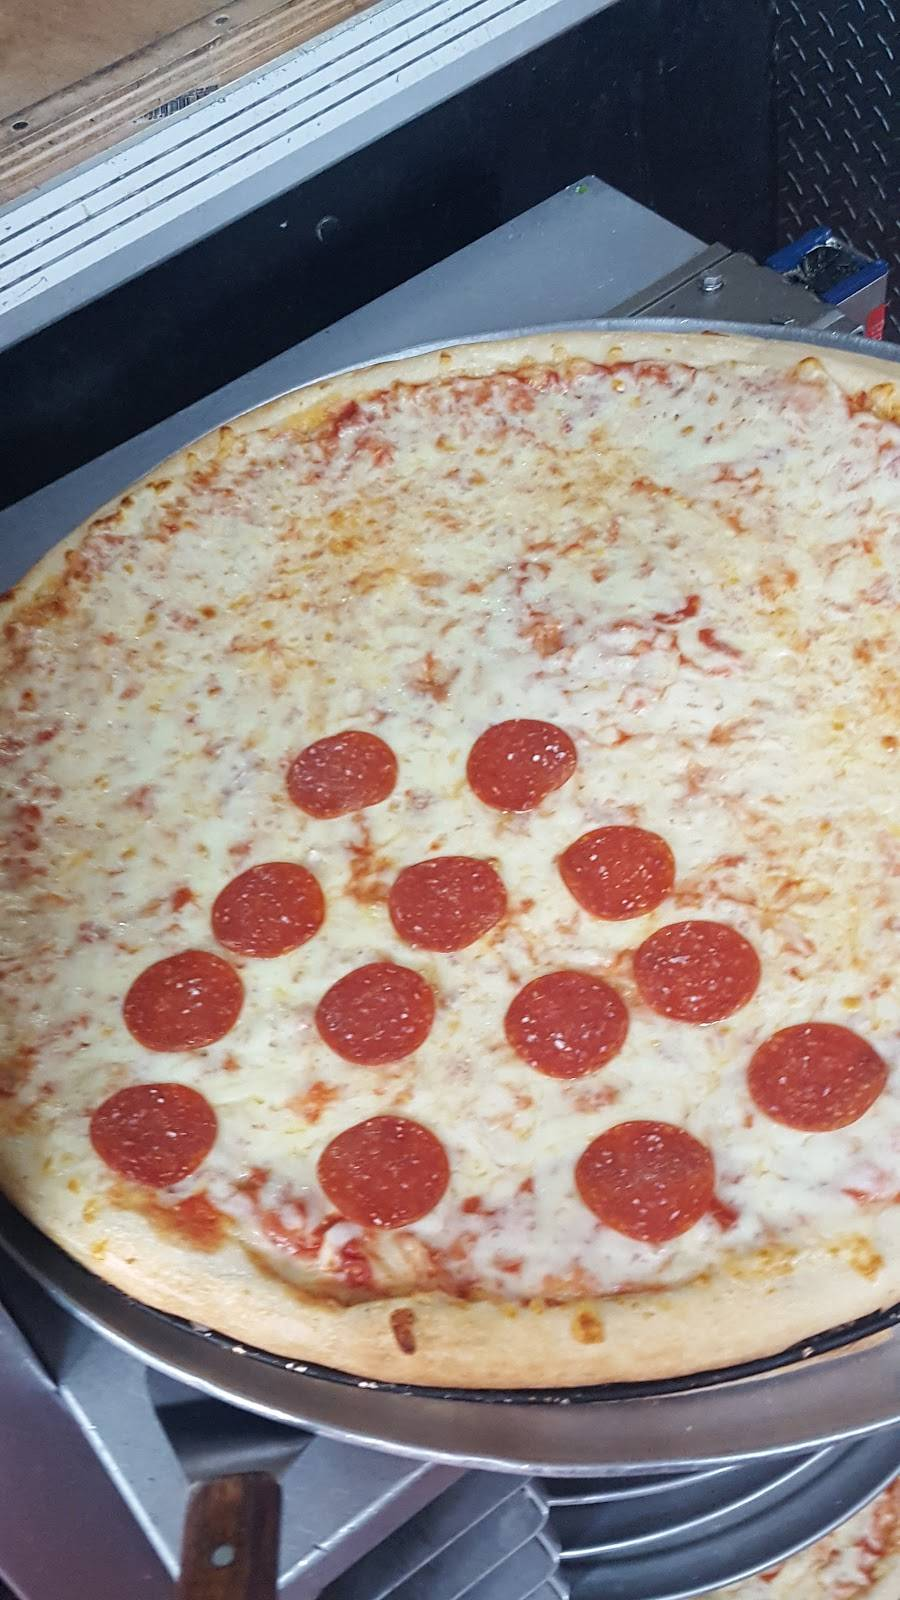 Kennedy Fried Chicken pizza | restaurant | 2115 Grand Concourse, The Bronx, NY 10453, USA | 7183294138 OR +1 718-329-4138